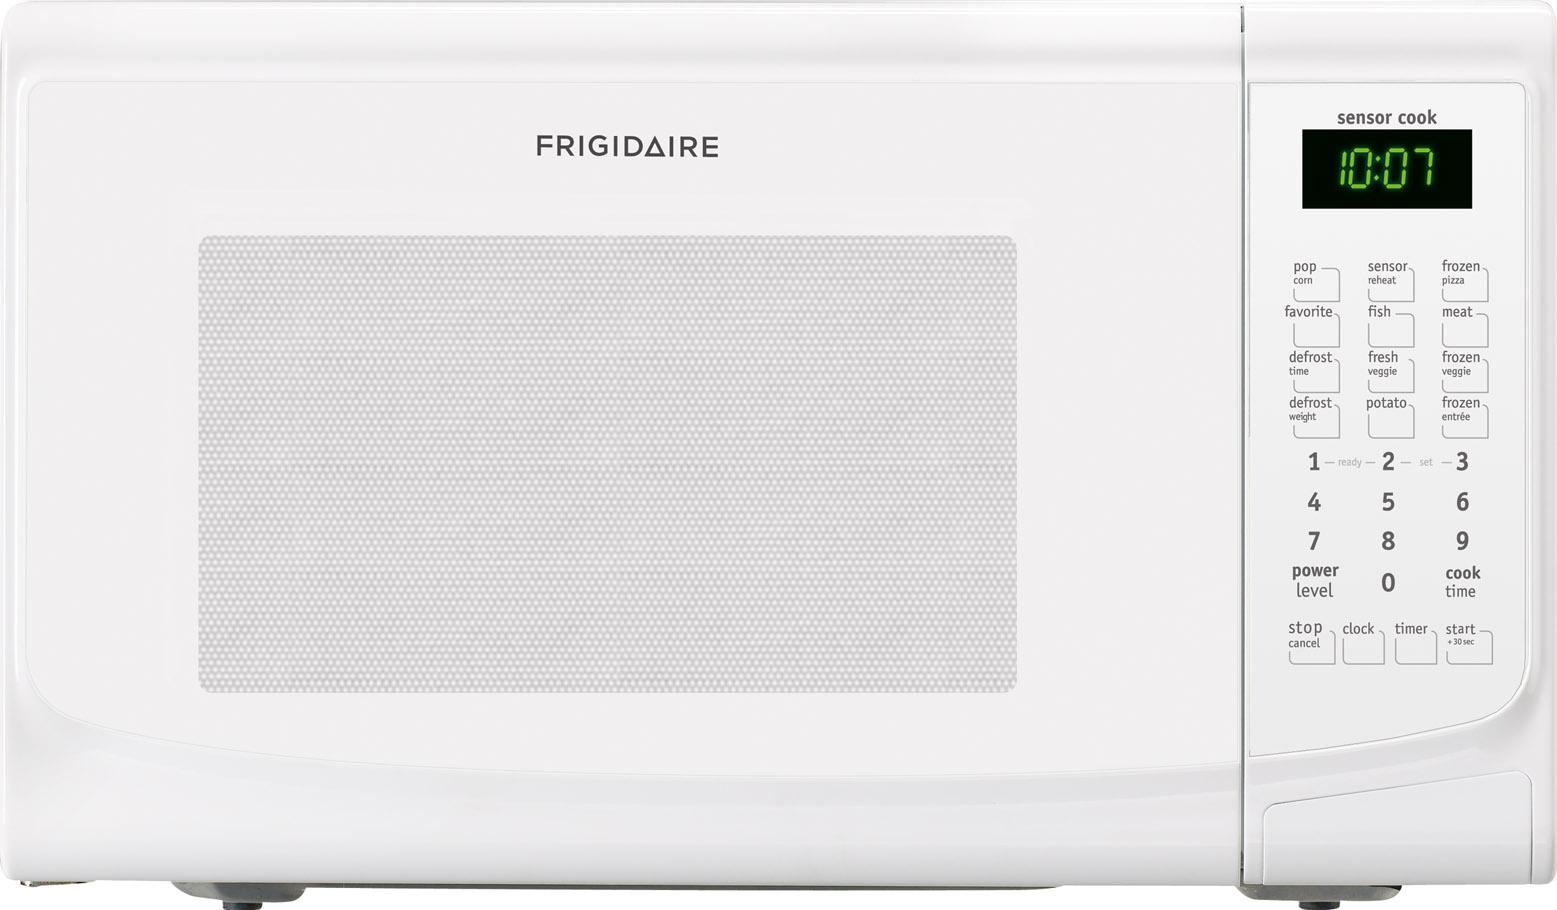 Frigidaire Microwaves 1.4 Cu. Ft. Countertop Microwave - Item Number: FFCE1439LW